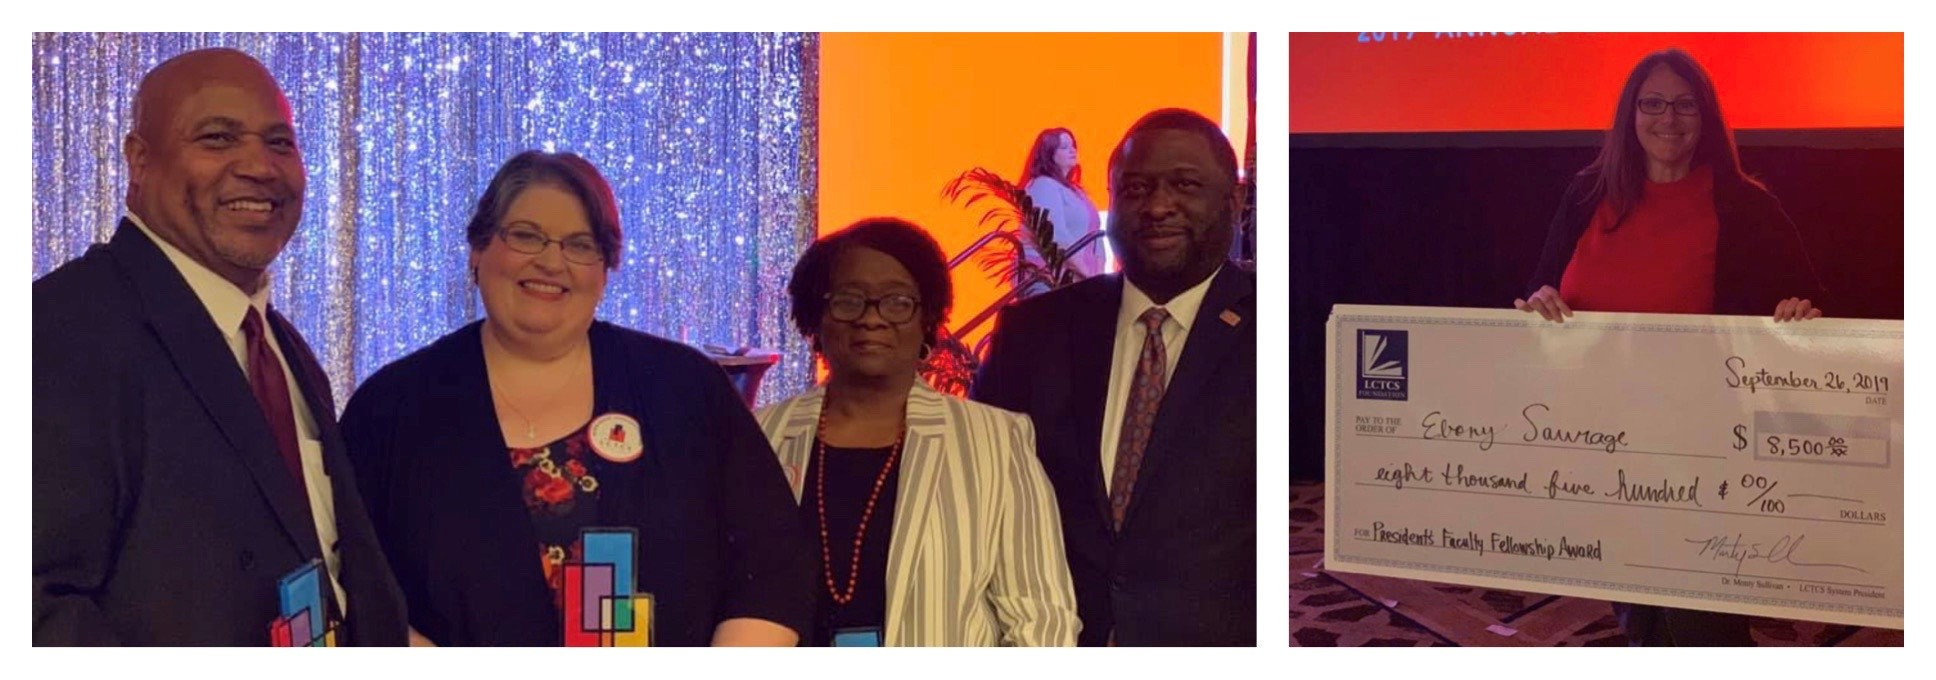 BRCC celebrates our faculty and staff members who were honored at this year's LCTCS Annual Conference. L to R: David Sylvester, Computer Science Professor; Buffy Brinkley, Assistant to Dean of Technical Education; Dava Prince, Student Success Coach; BRCC Interim Chancellor Dr. Willie E. Smith; and Eboni Saurage, Practicing Surgical Technologist.